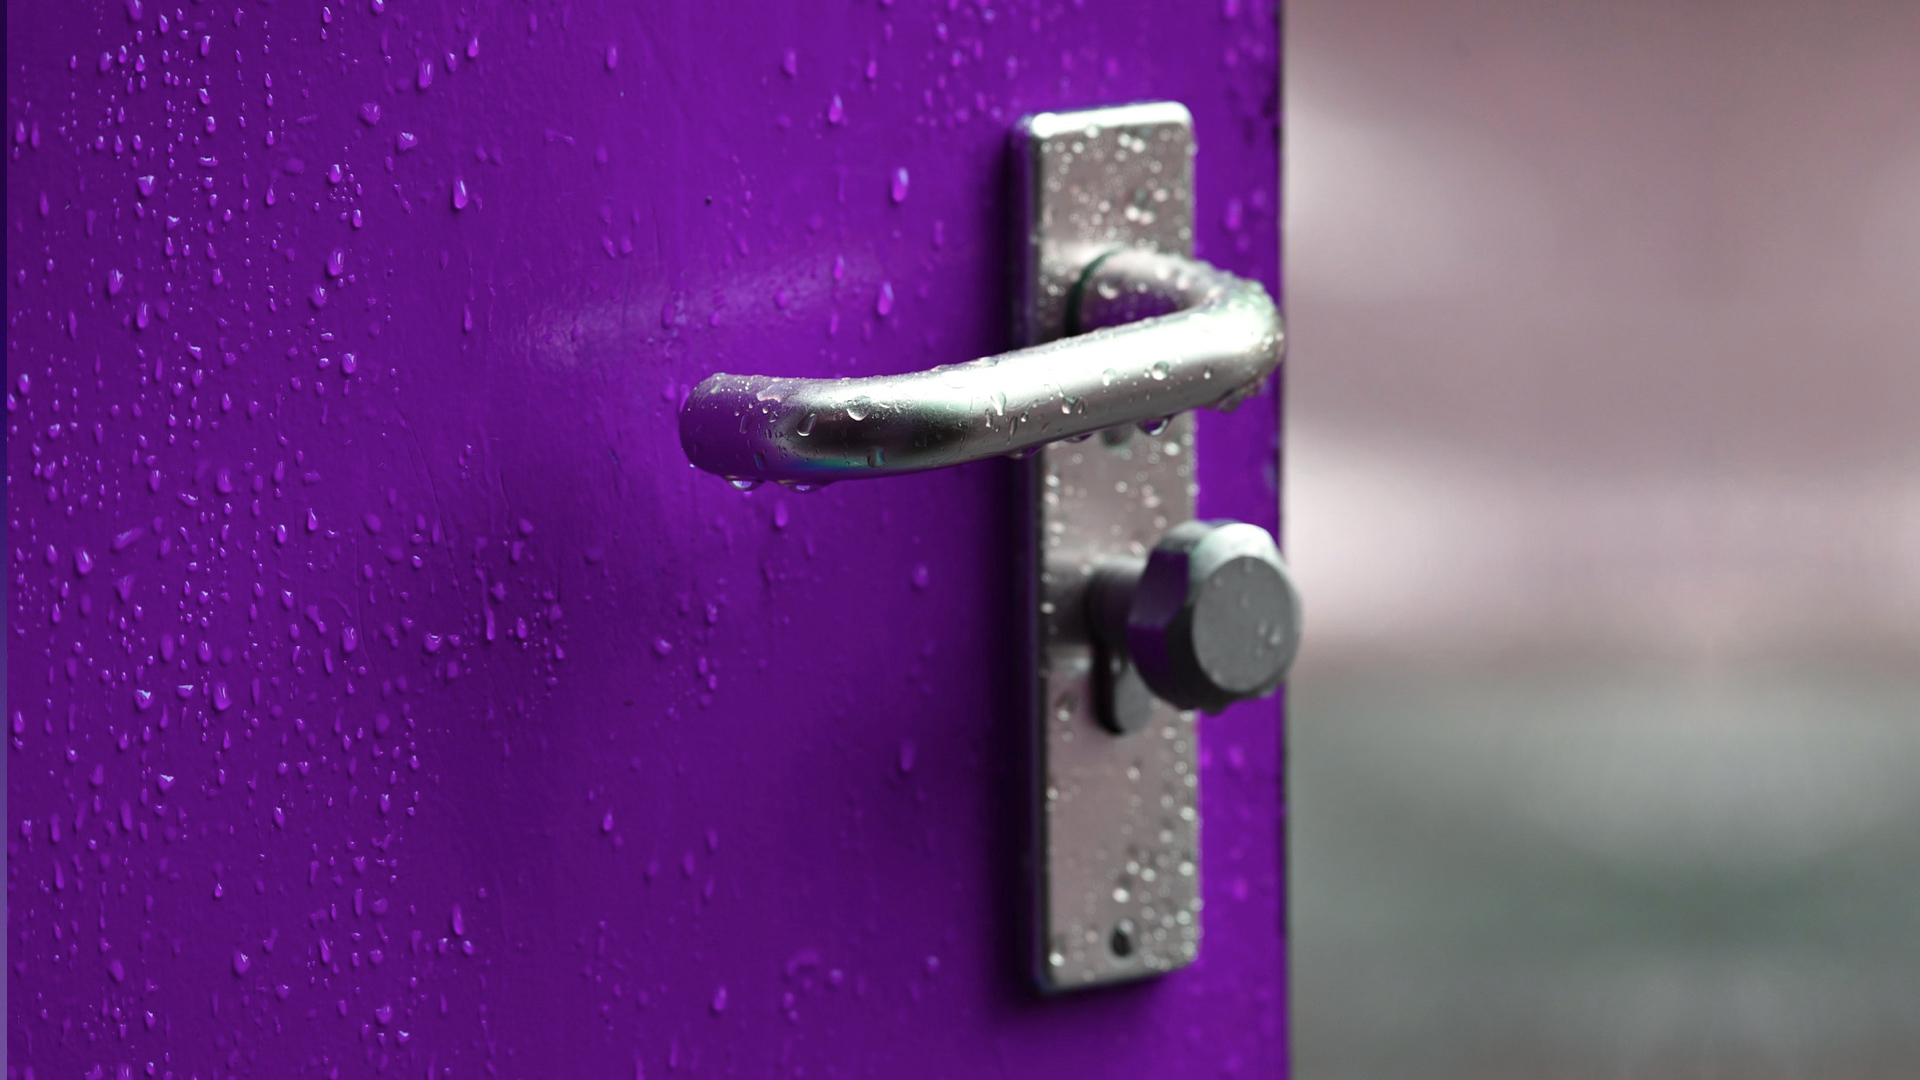 A purple door with a silver handle.